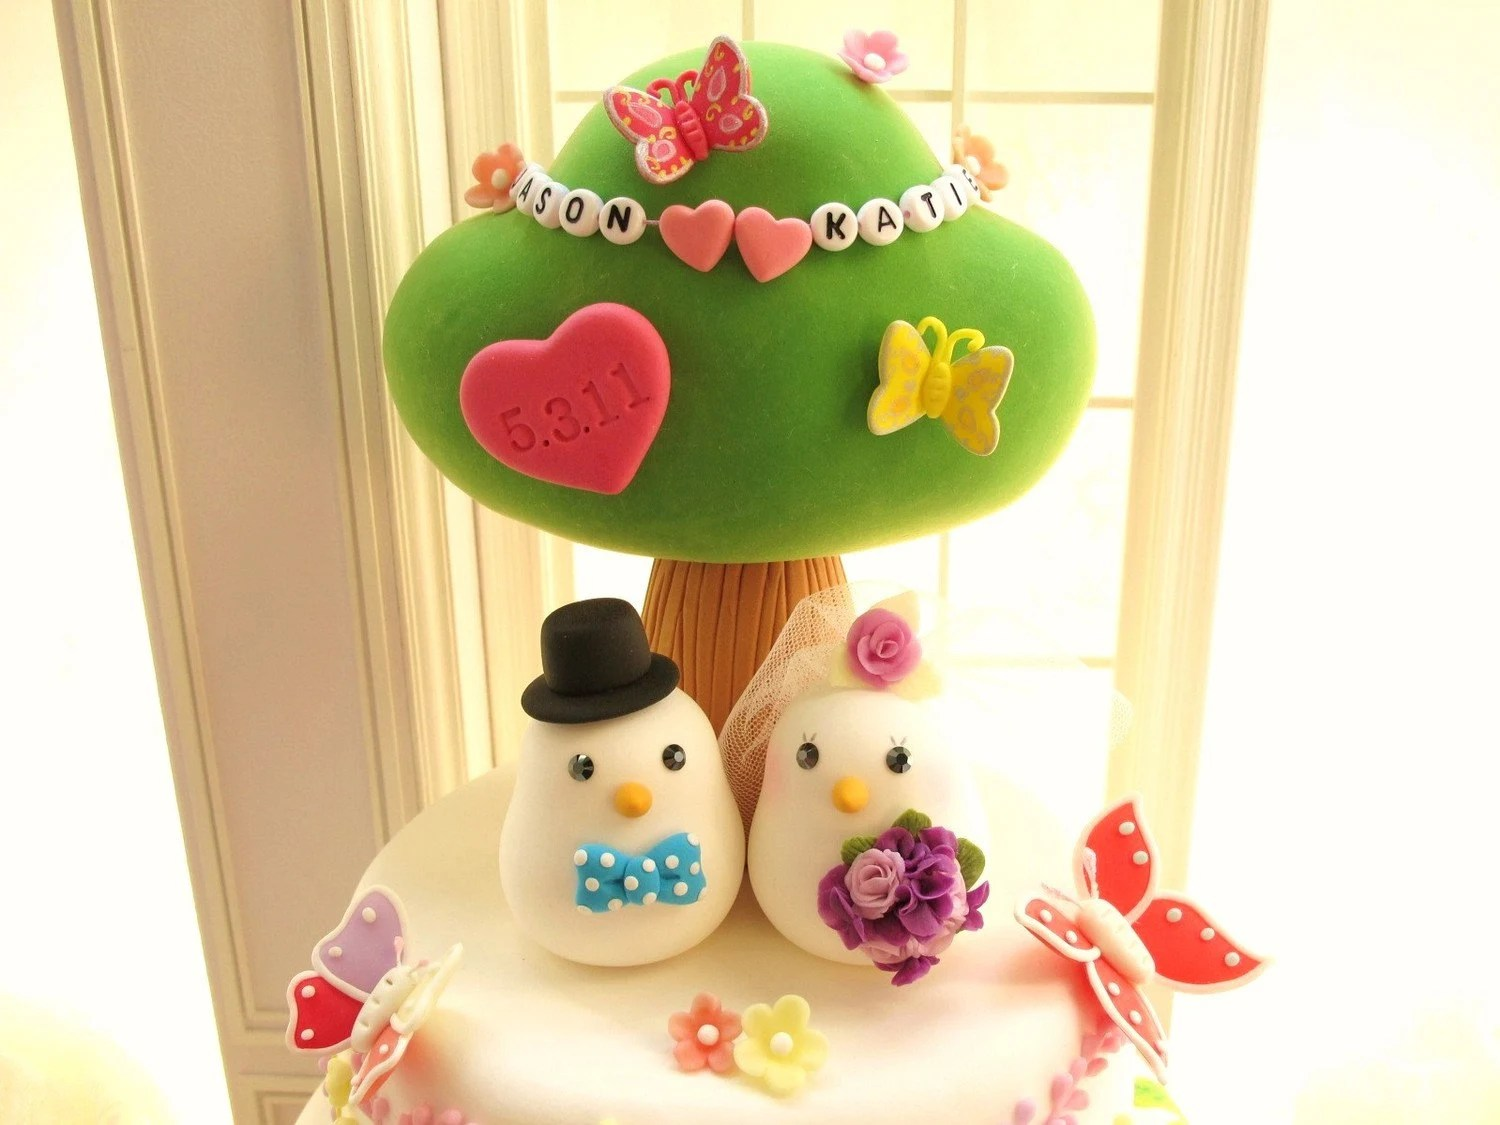 LOVE ANGELS Wedding Cake Topper-love bird with tree